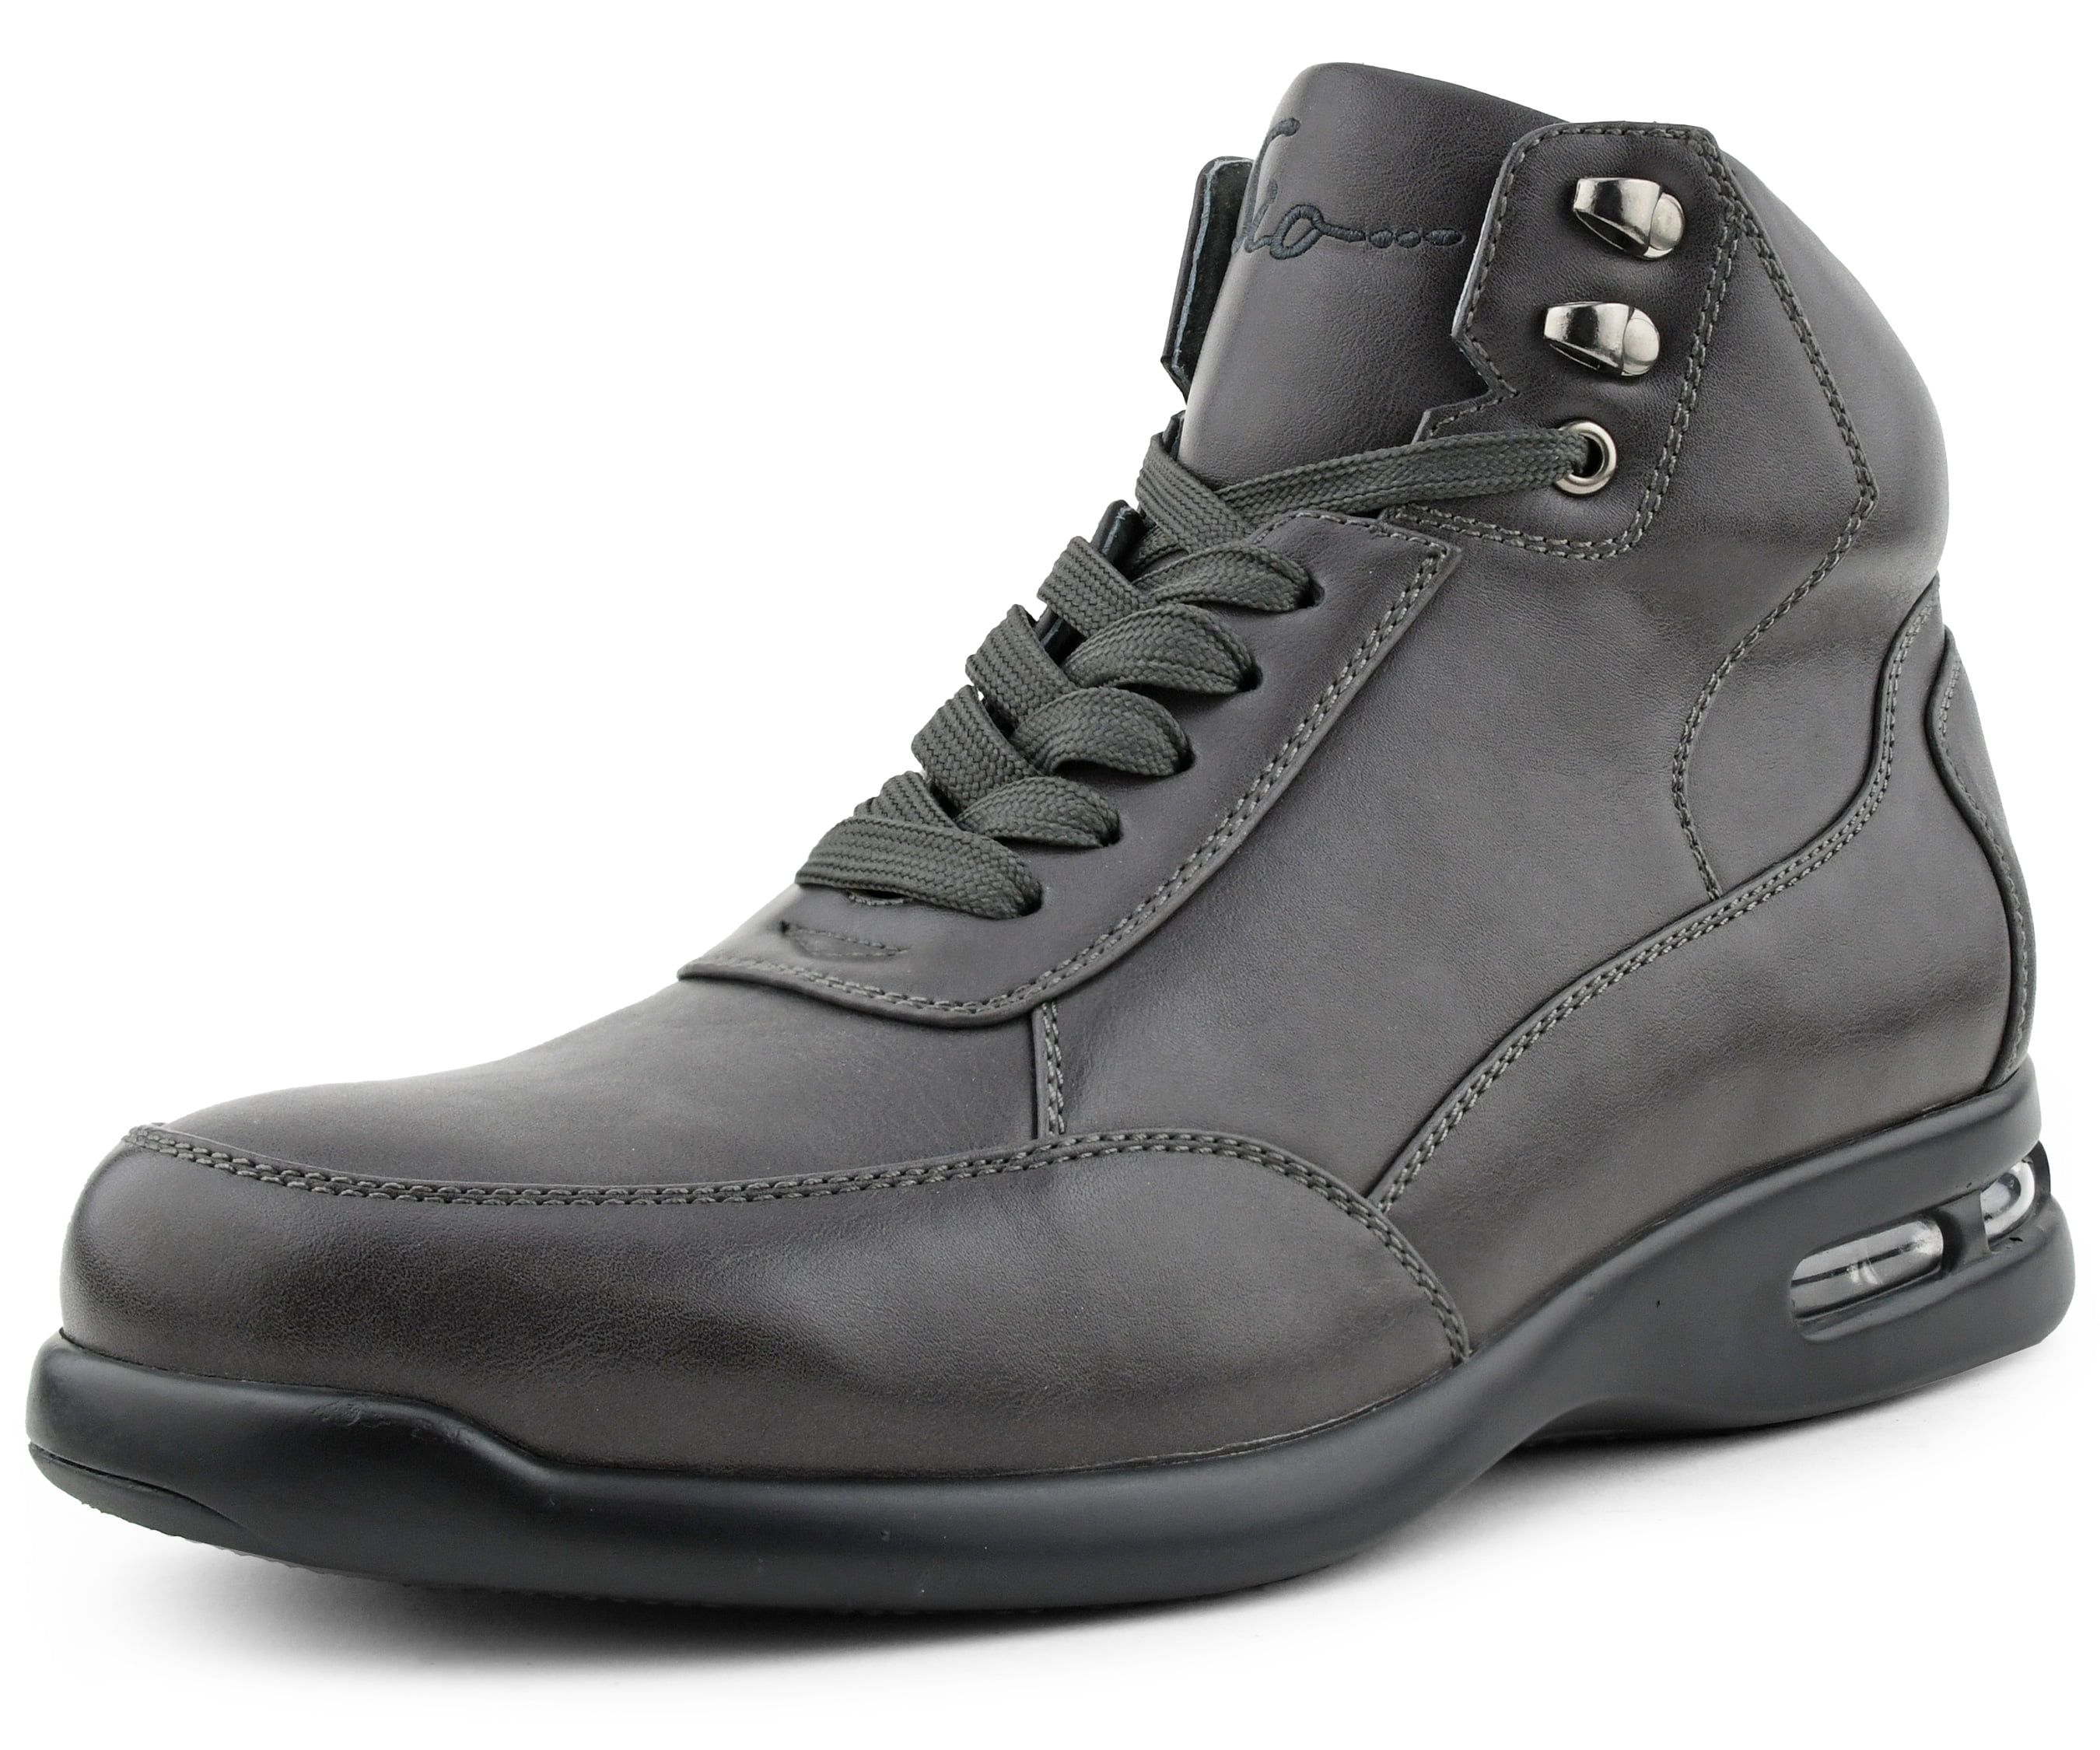 Sio Mens High Top Sneaker Boots Faber